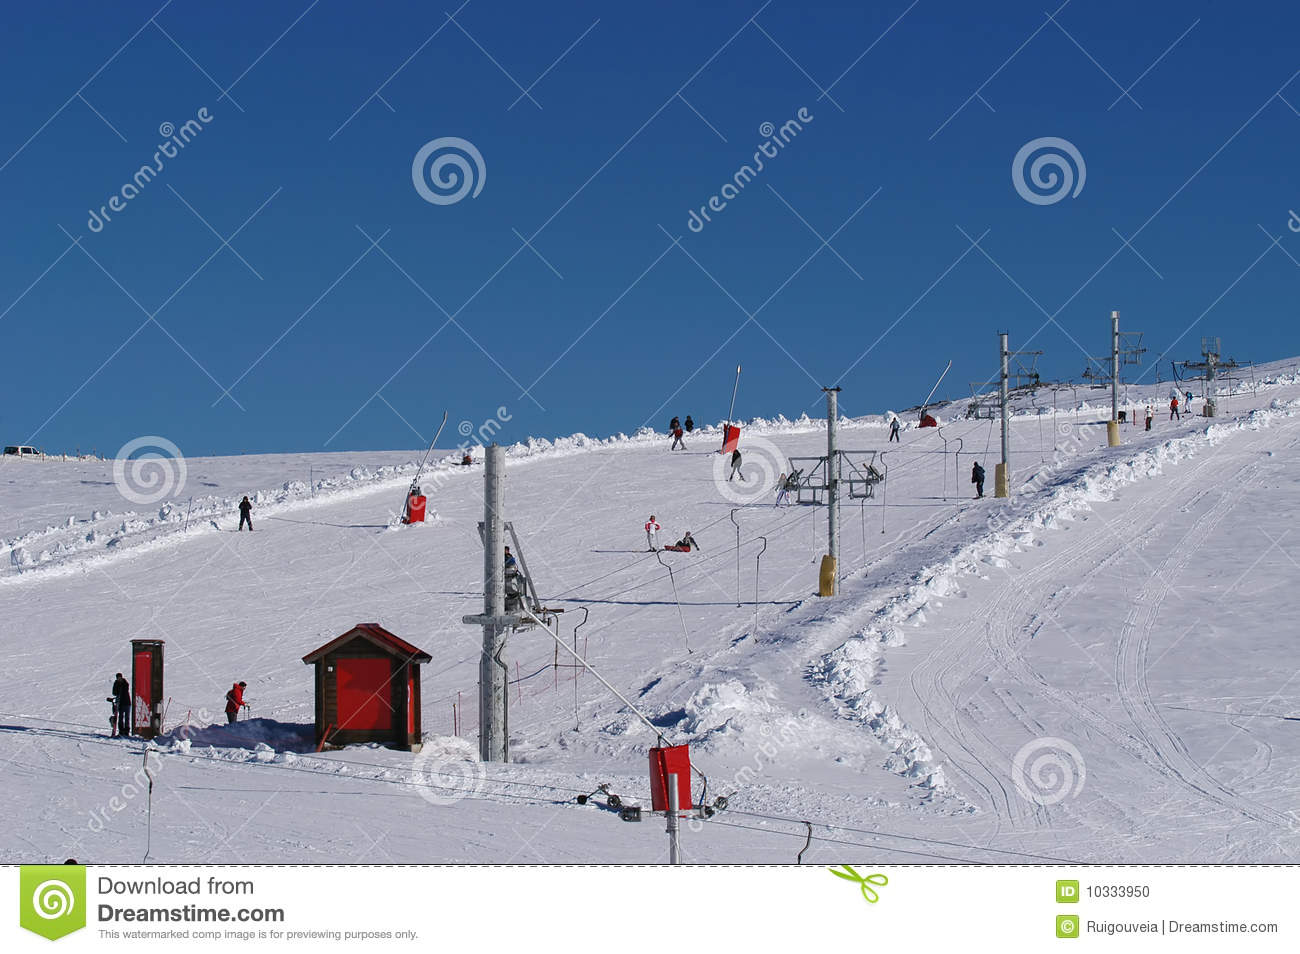 Sport and recreation in the snow